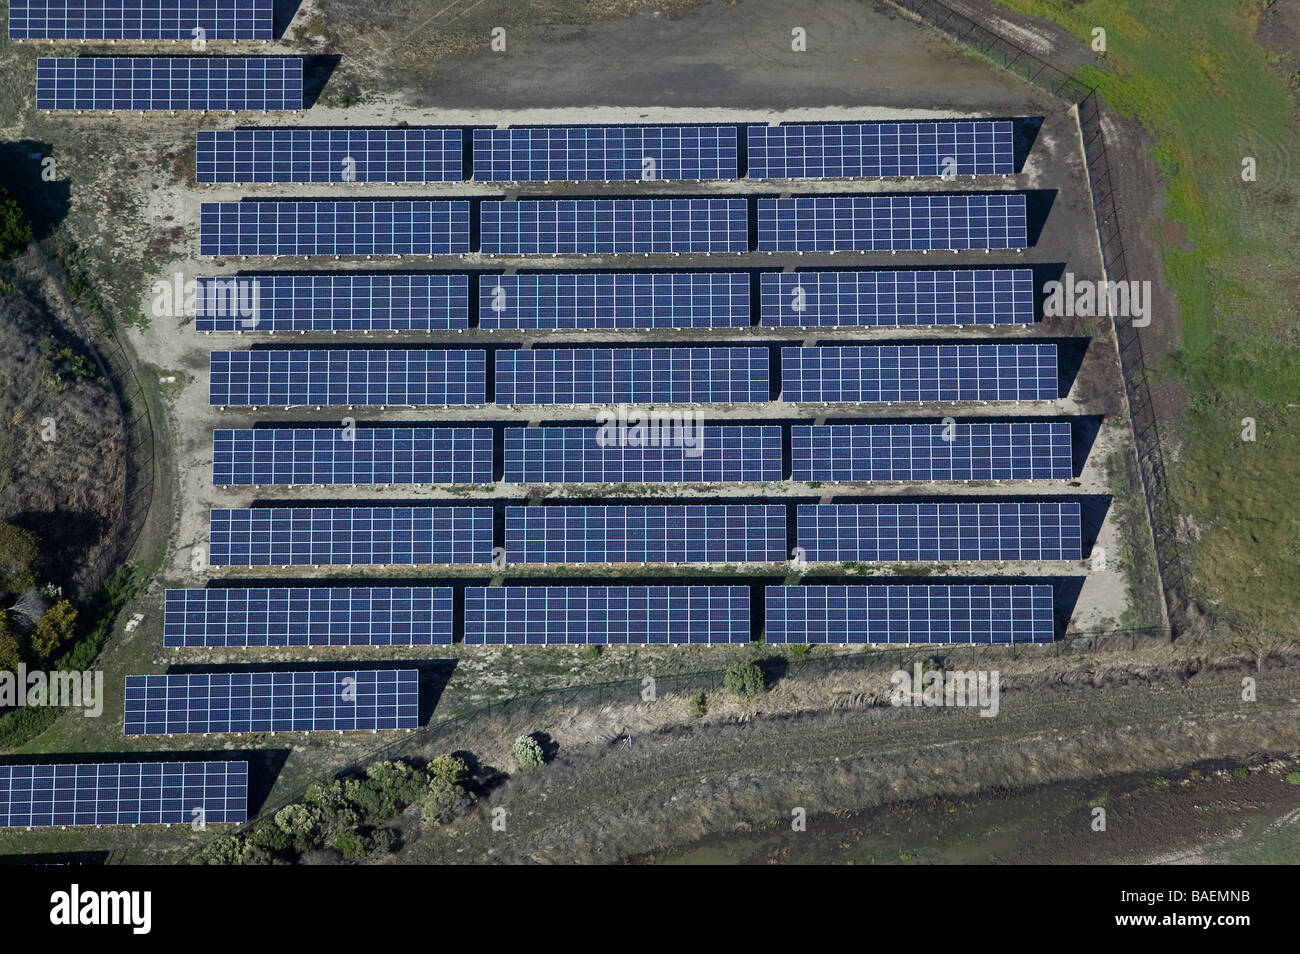 aerial view above solar array Marin county California wetlands restoration project - Stock Image